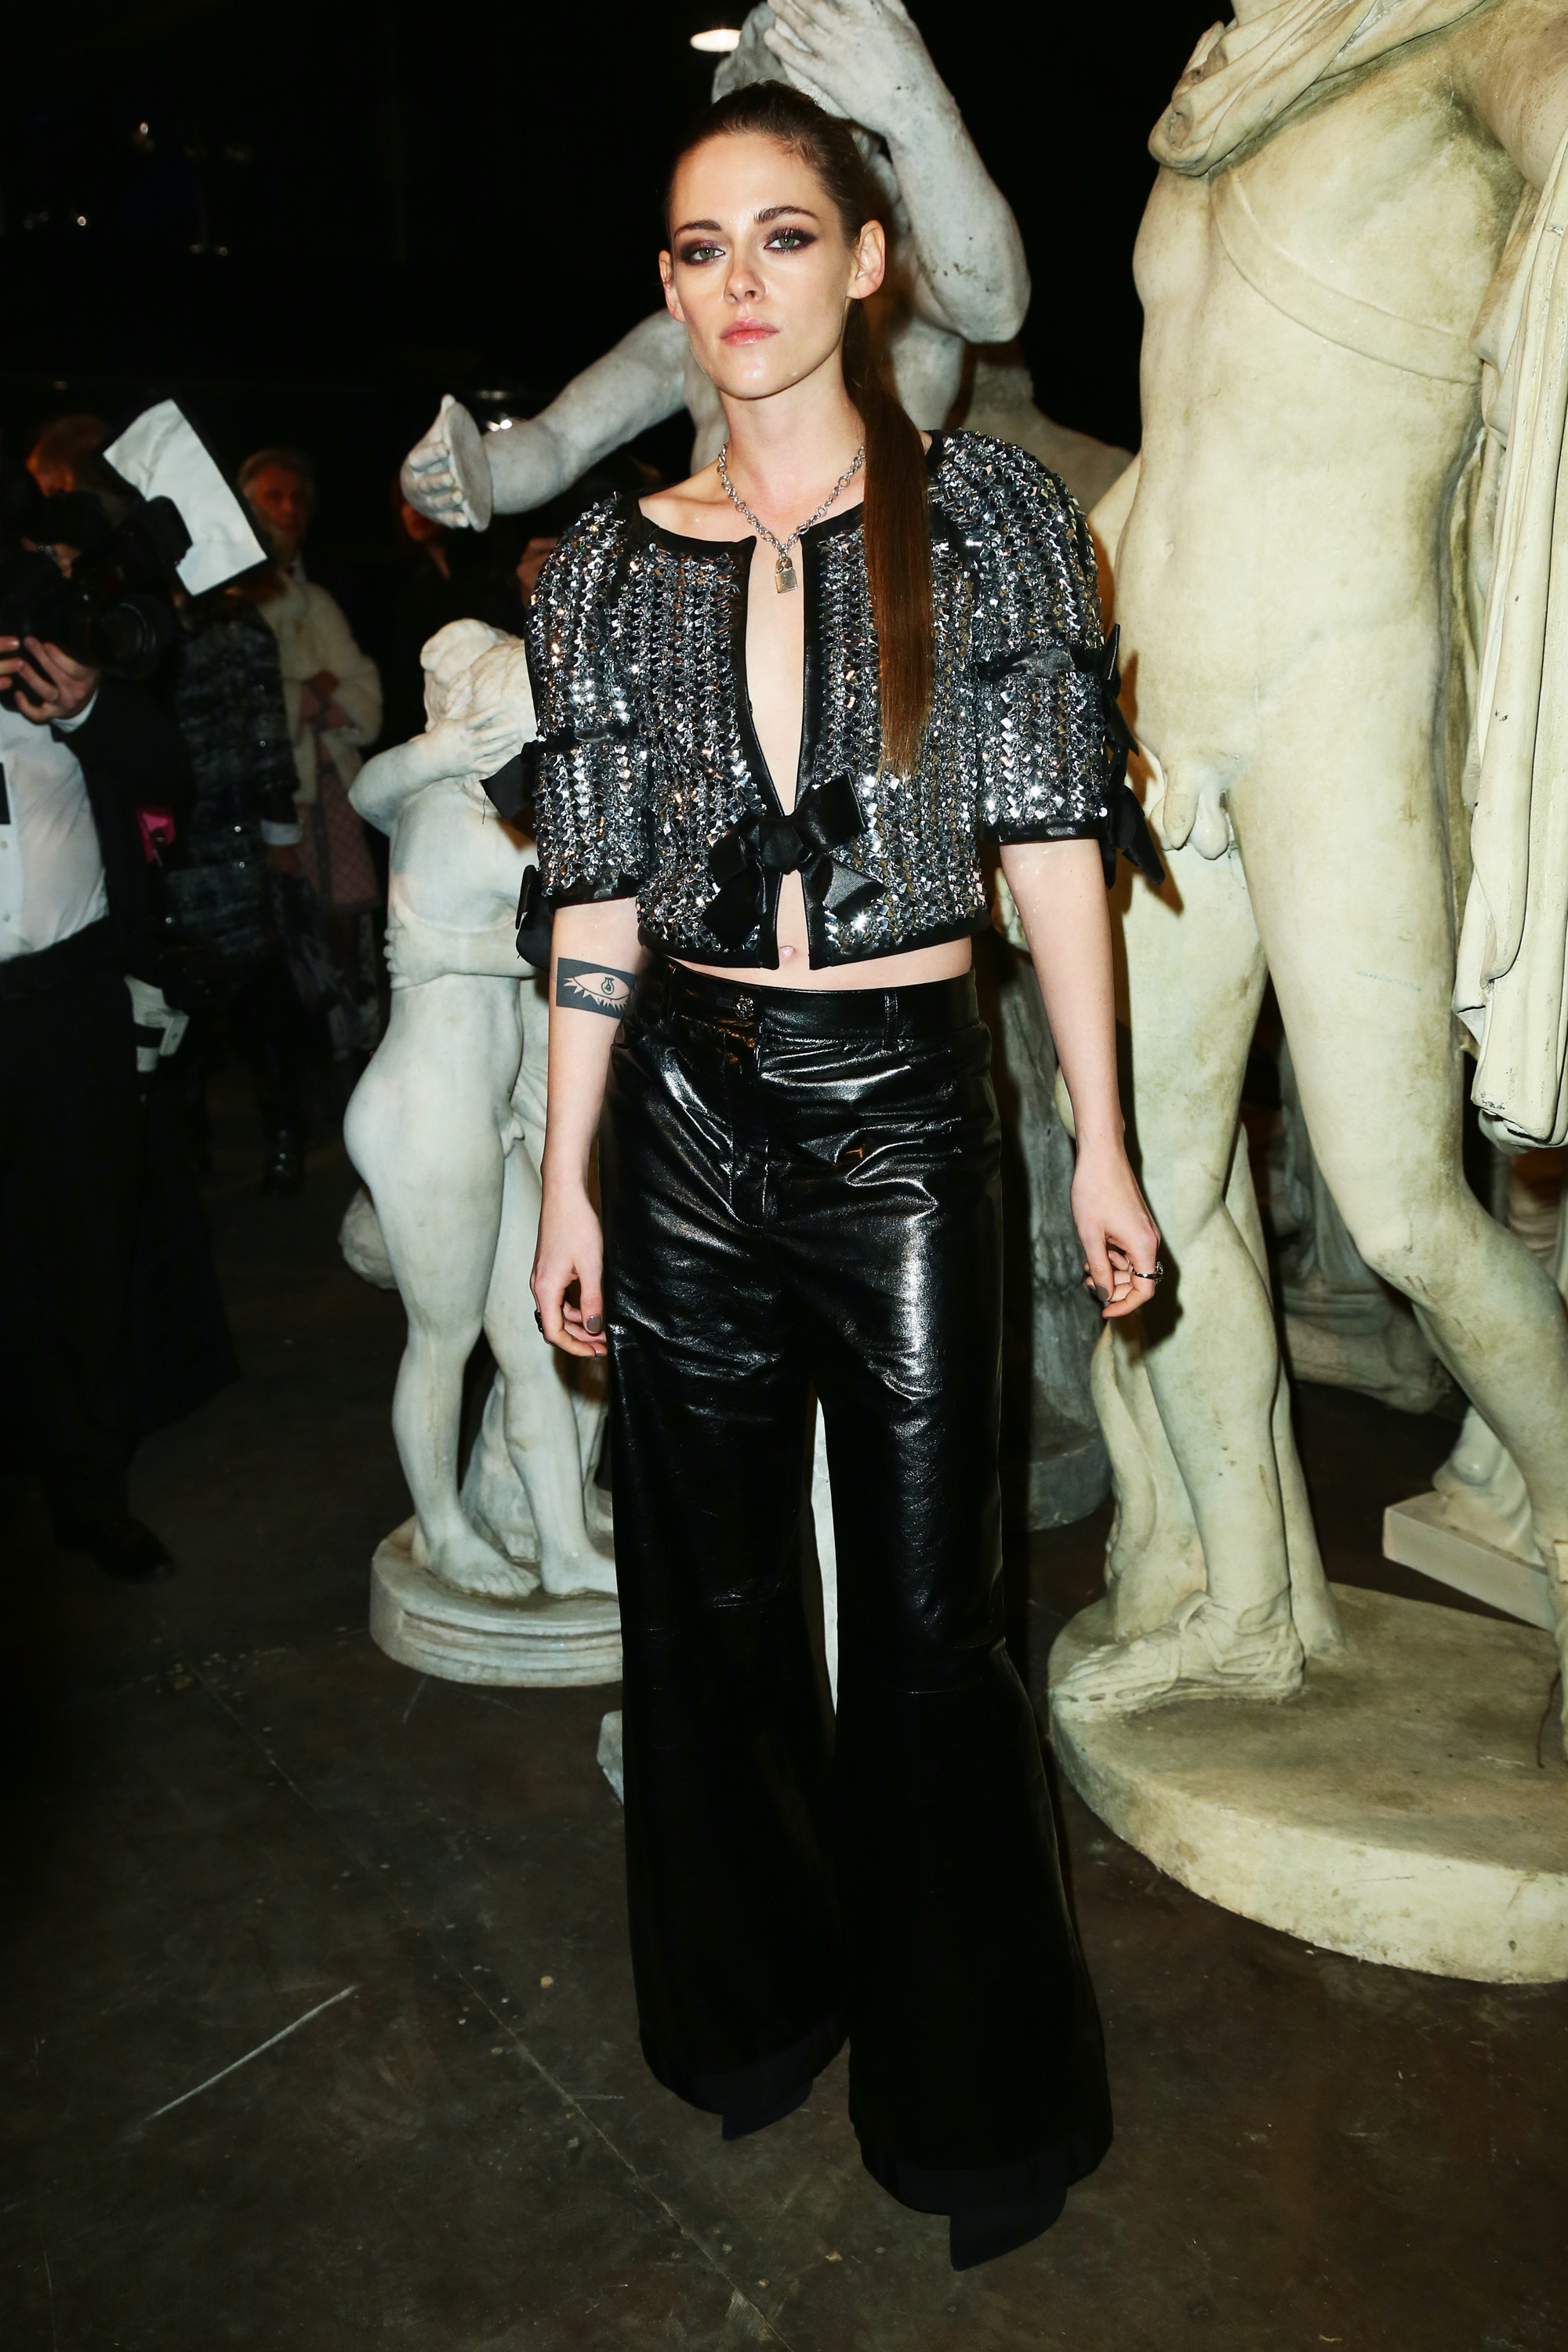 """For Chanel's Metiers d'Art 2015/16 fashion show the style set jetted to Rome's famous Cinecittà's Studio 5 where Karl Lagerfeld re-created a Parisian street, complete with a Metro, Boulangerie and a movie theatre, aptly called Cinema Le Paris. The evening started with a viewing of Chanel's <a href=""""http://honey.ninemsn.com.au/2015/12/02/07/54/kristen-stewart-chanel-film"""" target=""""_blank"""">new short<em>Once and Forever</em> starring Kristen Stewart and Geraldine Chaplin</a>, before heading into  a runway presentation. When it came to high-powered guests, Stewart and Chaplin stole the show, followed closely by Rooney Mara in a pale pink dress. Click through to see what everyone wore."""